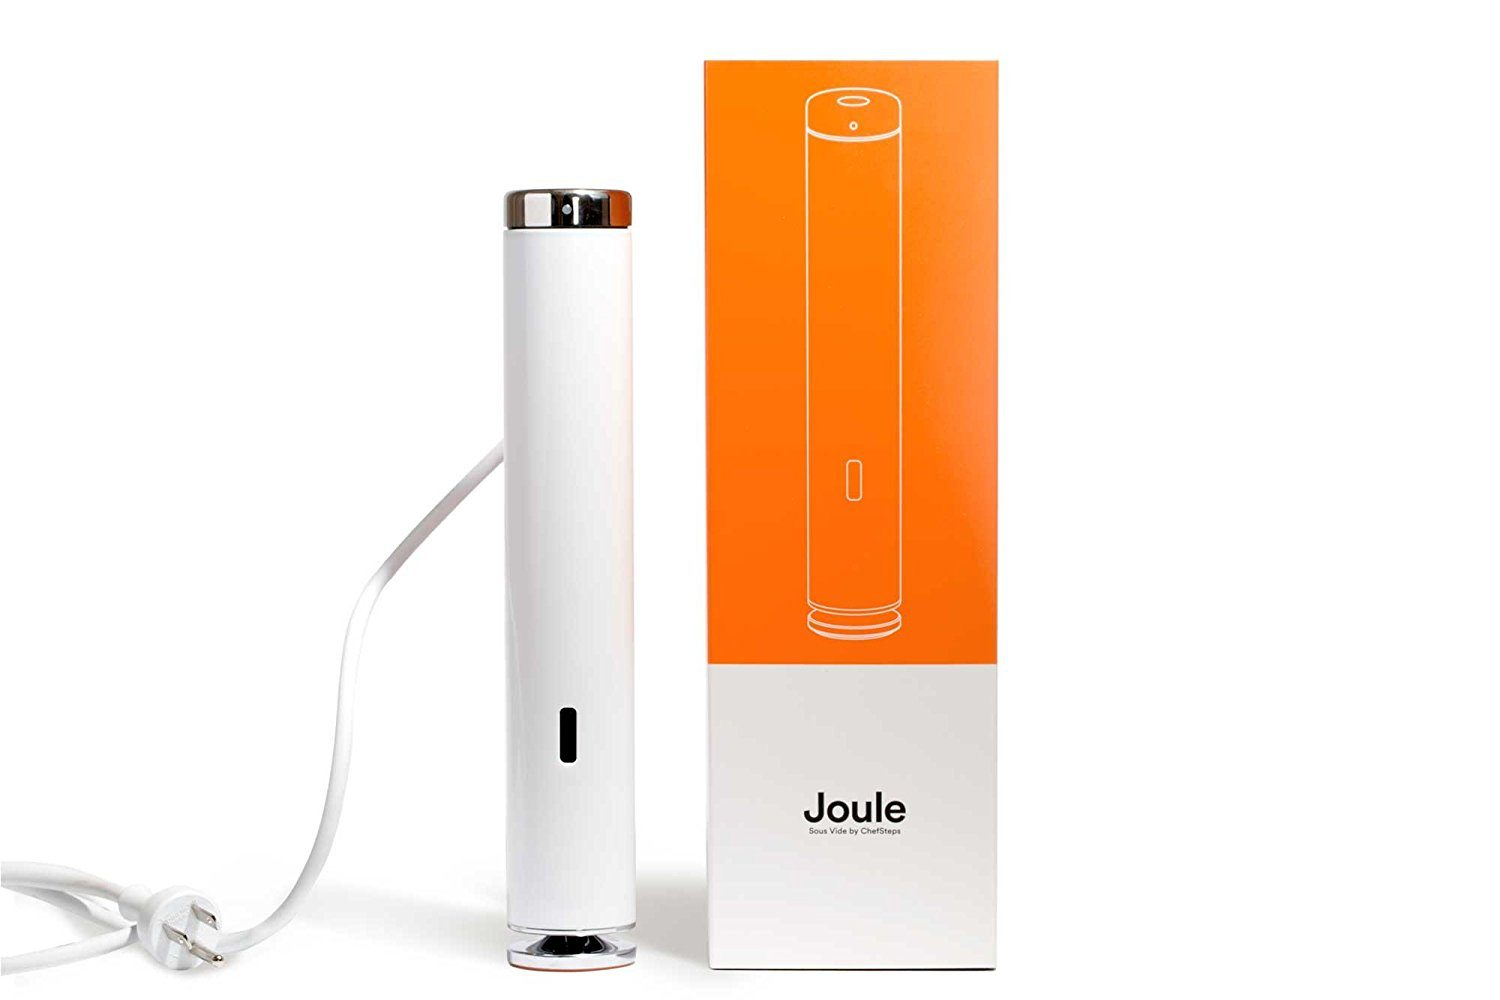 Joule sous vide circulator With Box